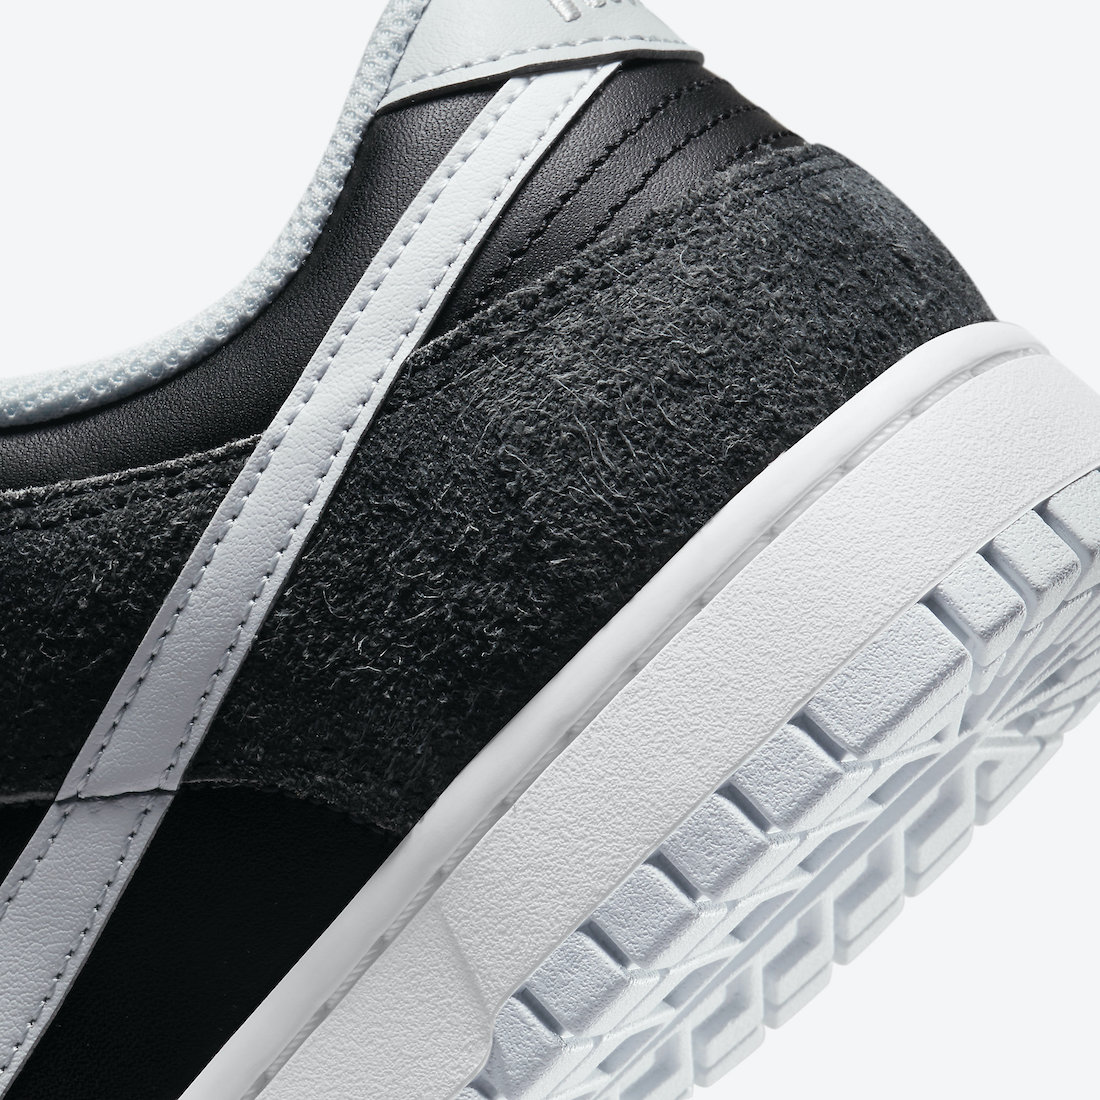 nike-dunk-low-retro-prm-black-dh7913-001-animal-pack-release-20210605